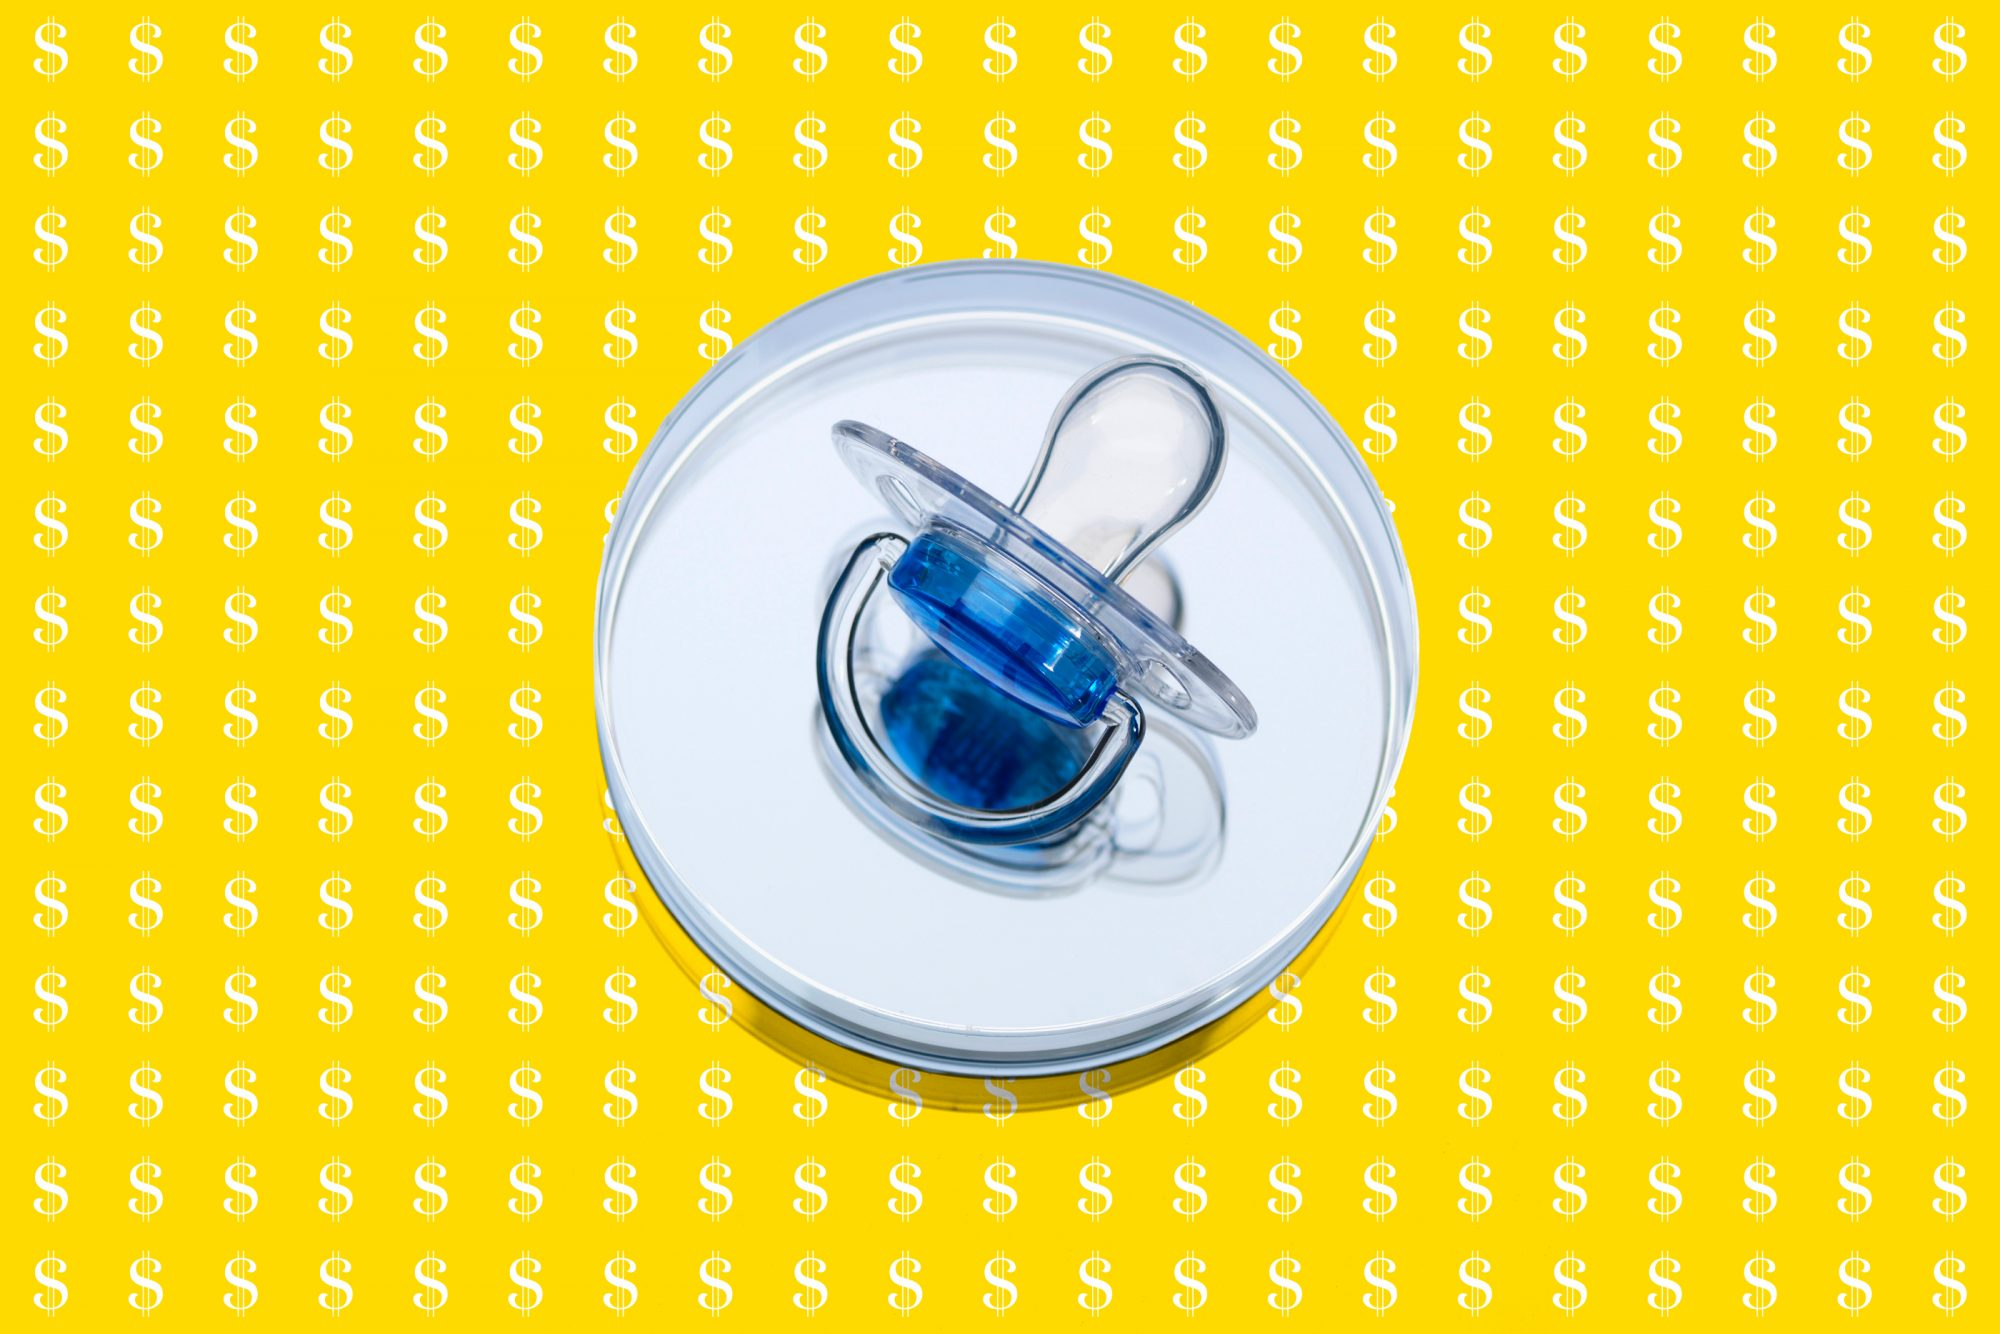 blue baby pacifier on top of petri dish on top of $